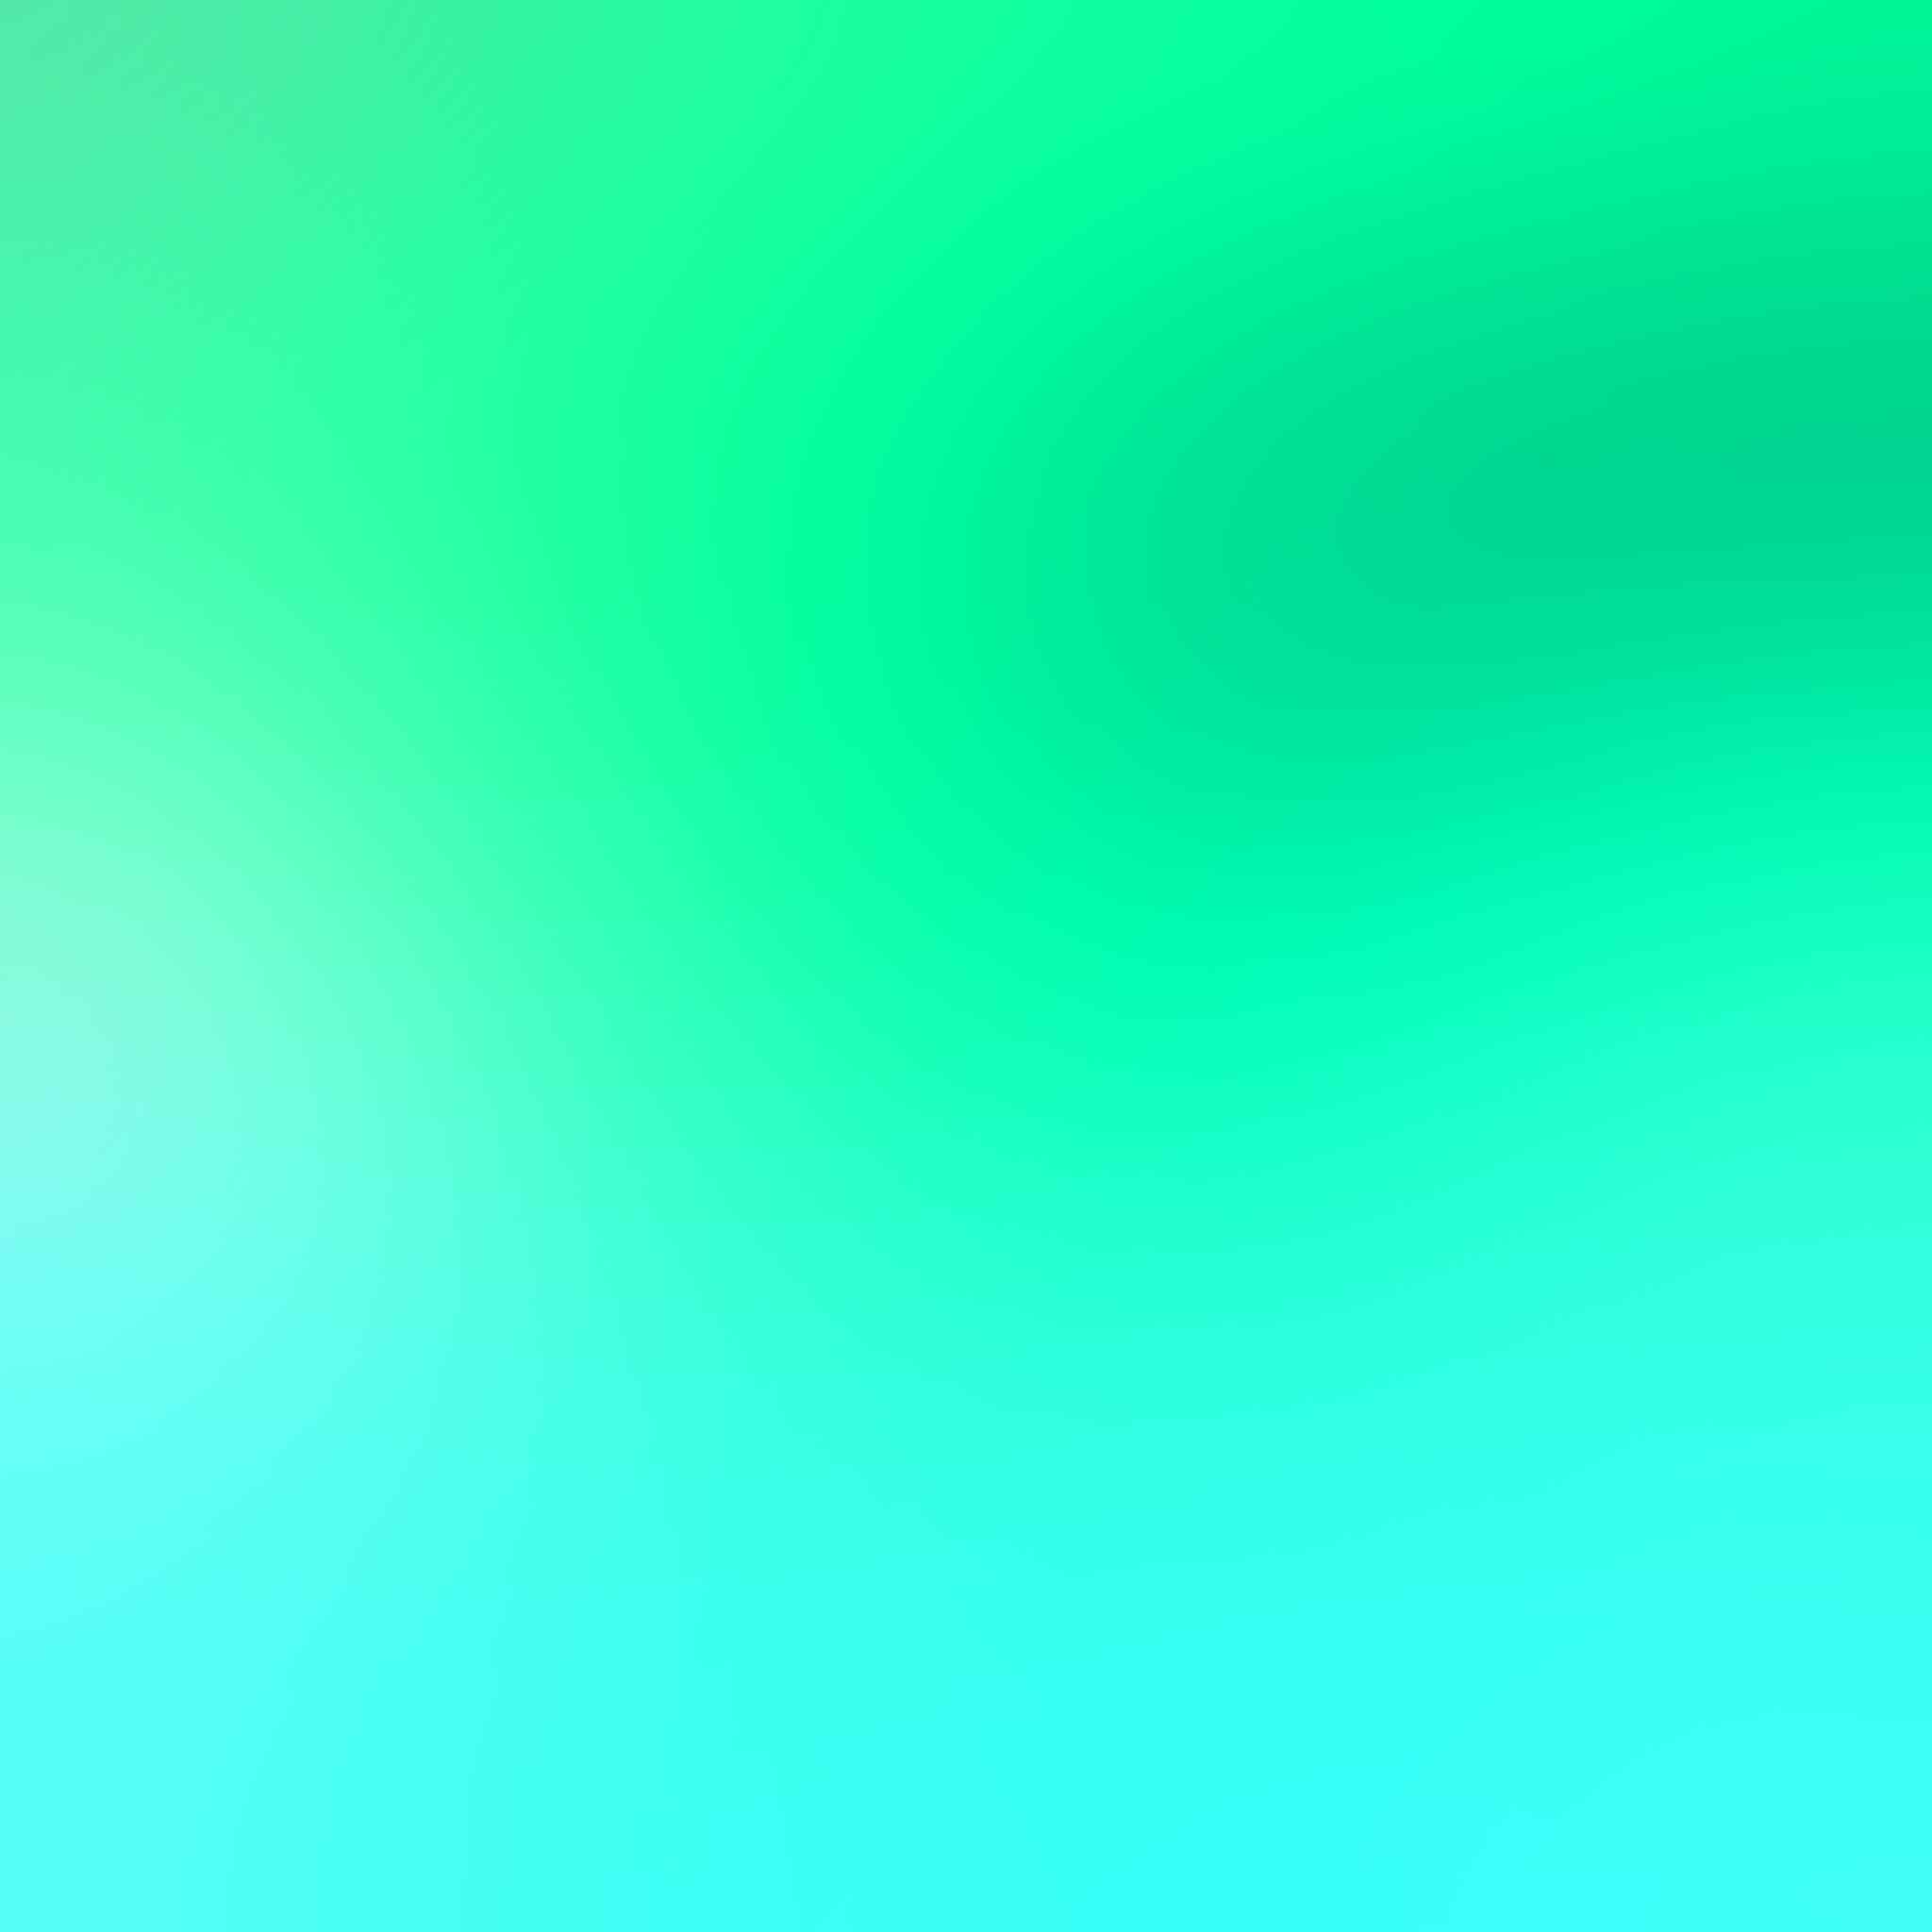 plain-neon-green-background